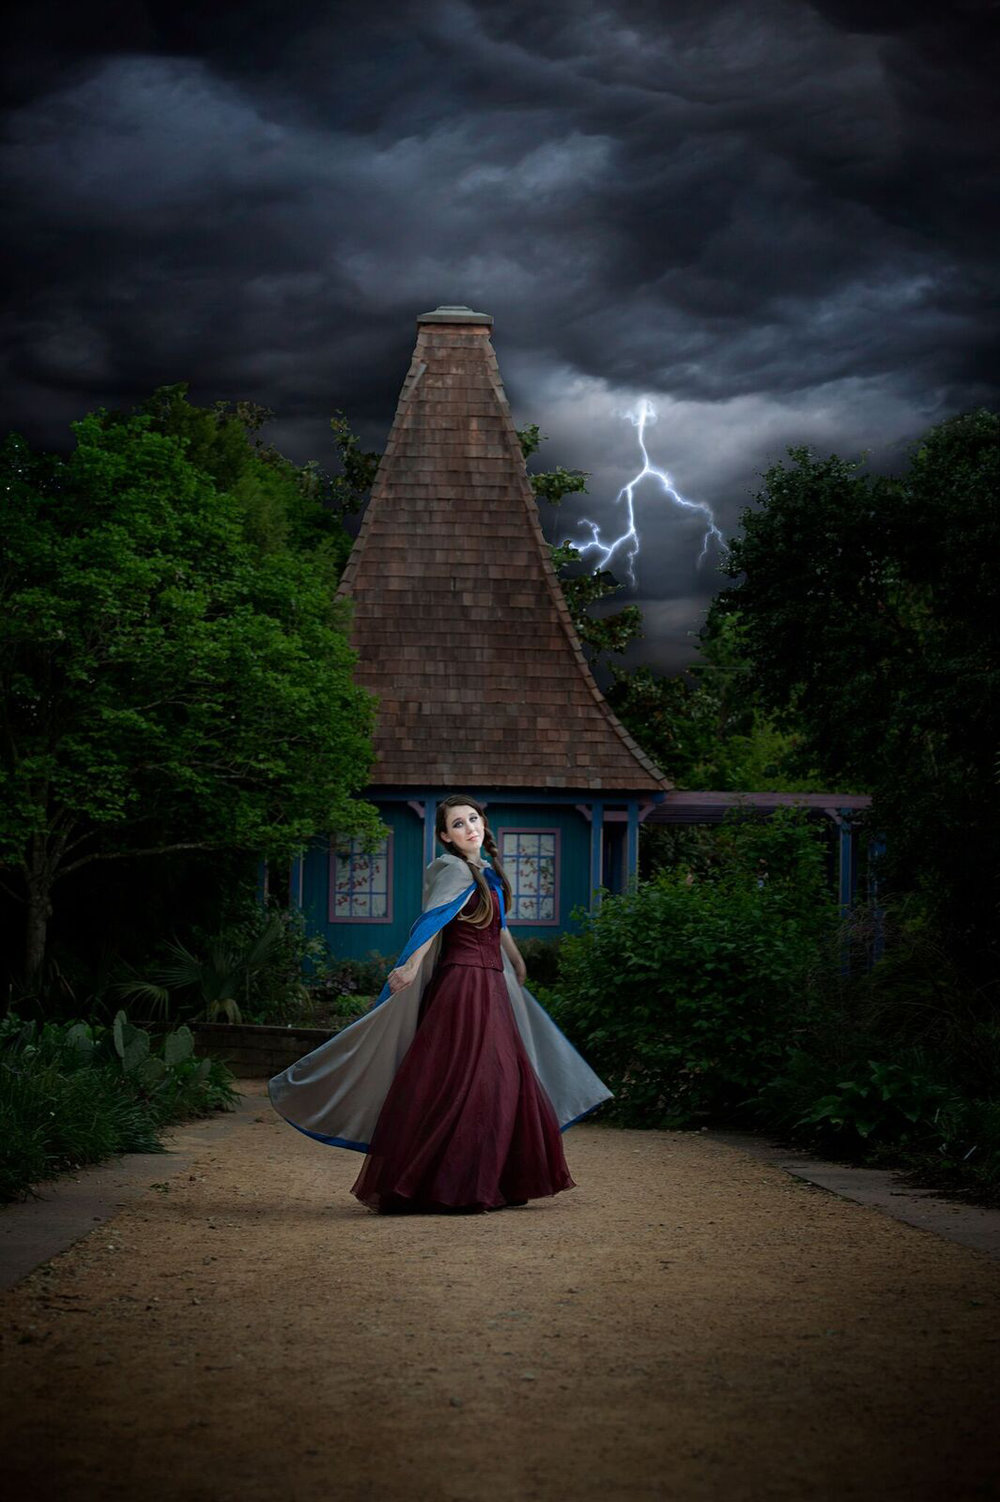 Photographer: Aymee Wolanski   Country: USA  Title: Twisted Fairytale